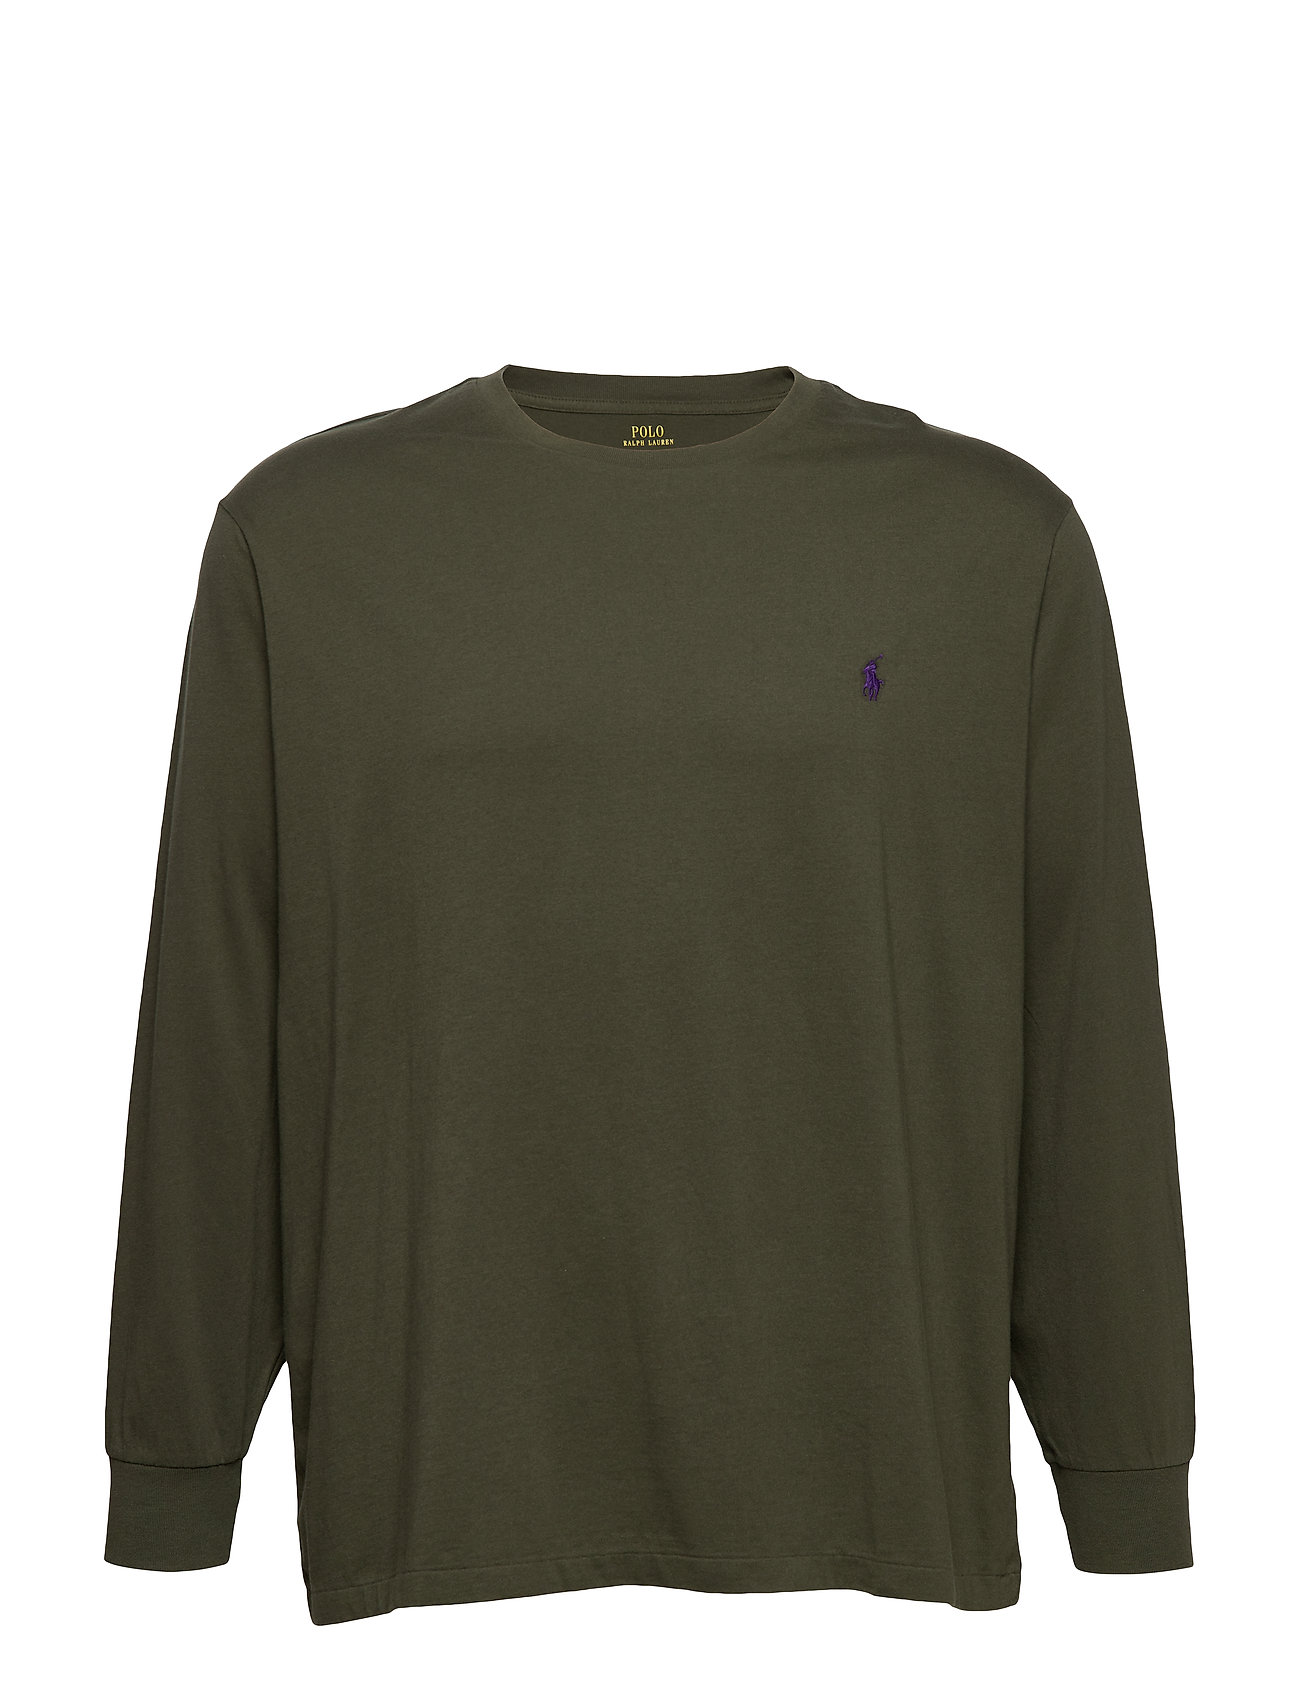 Polo Ralph Lauren Big & Tall Classic Fit Crewneck T-Shirt - ESTATE OLIVE/C498